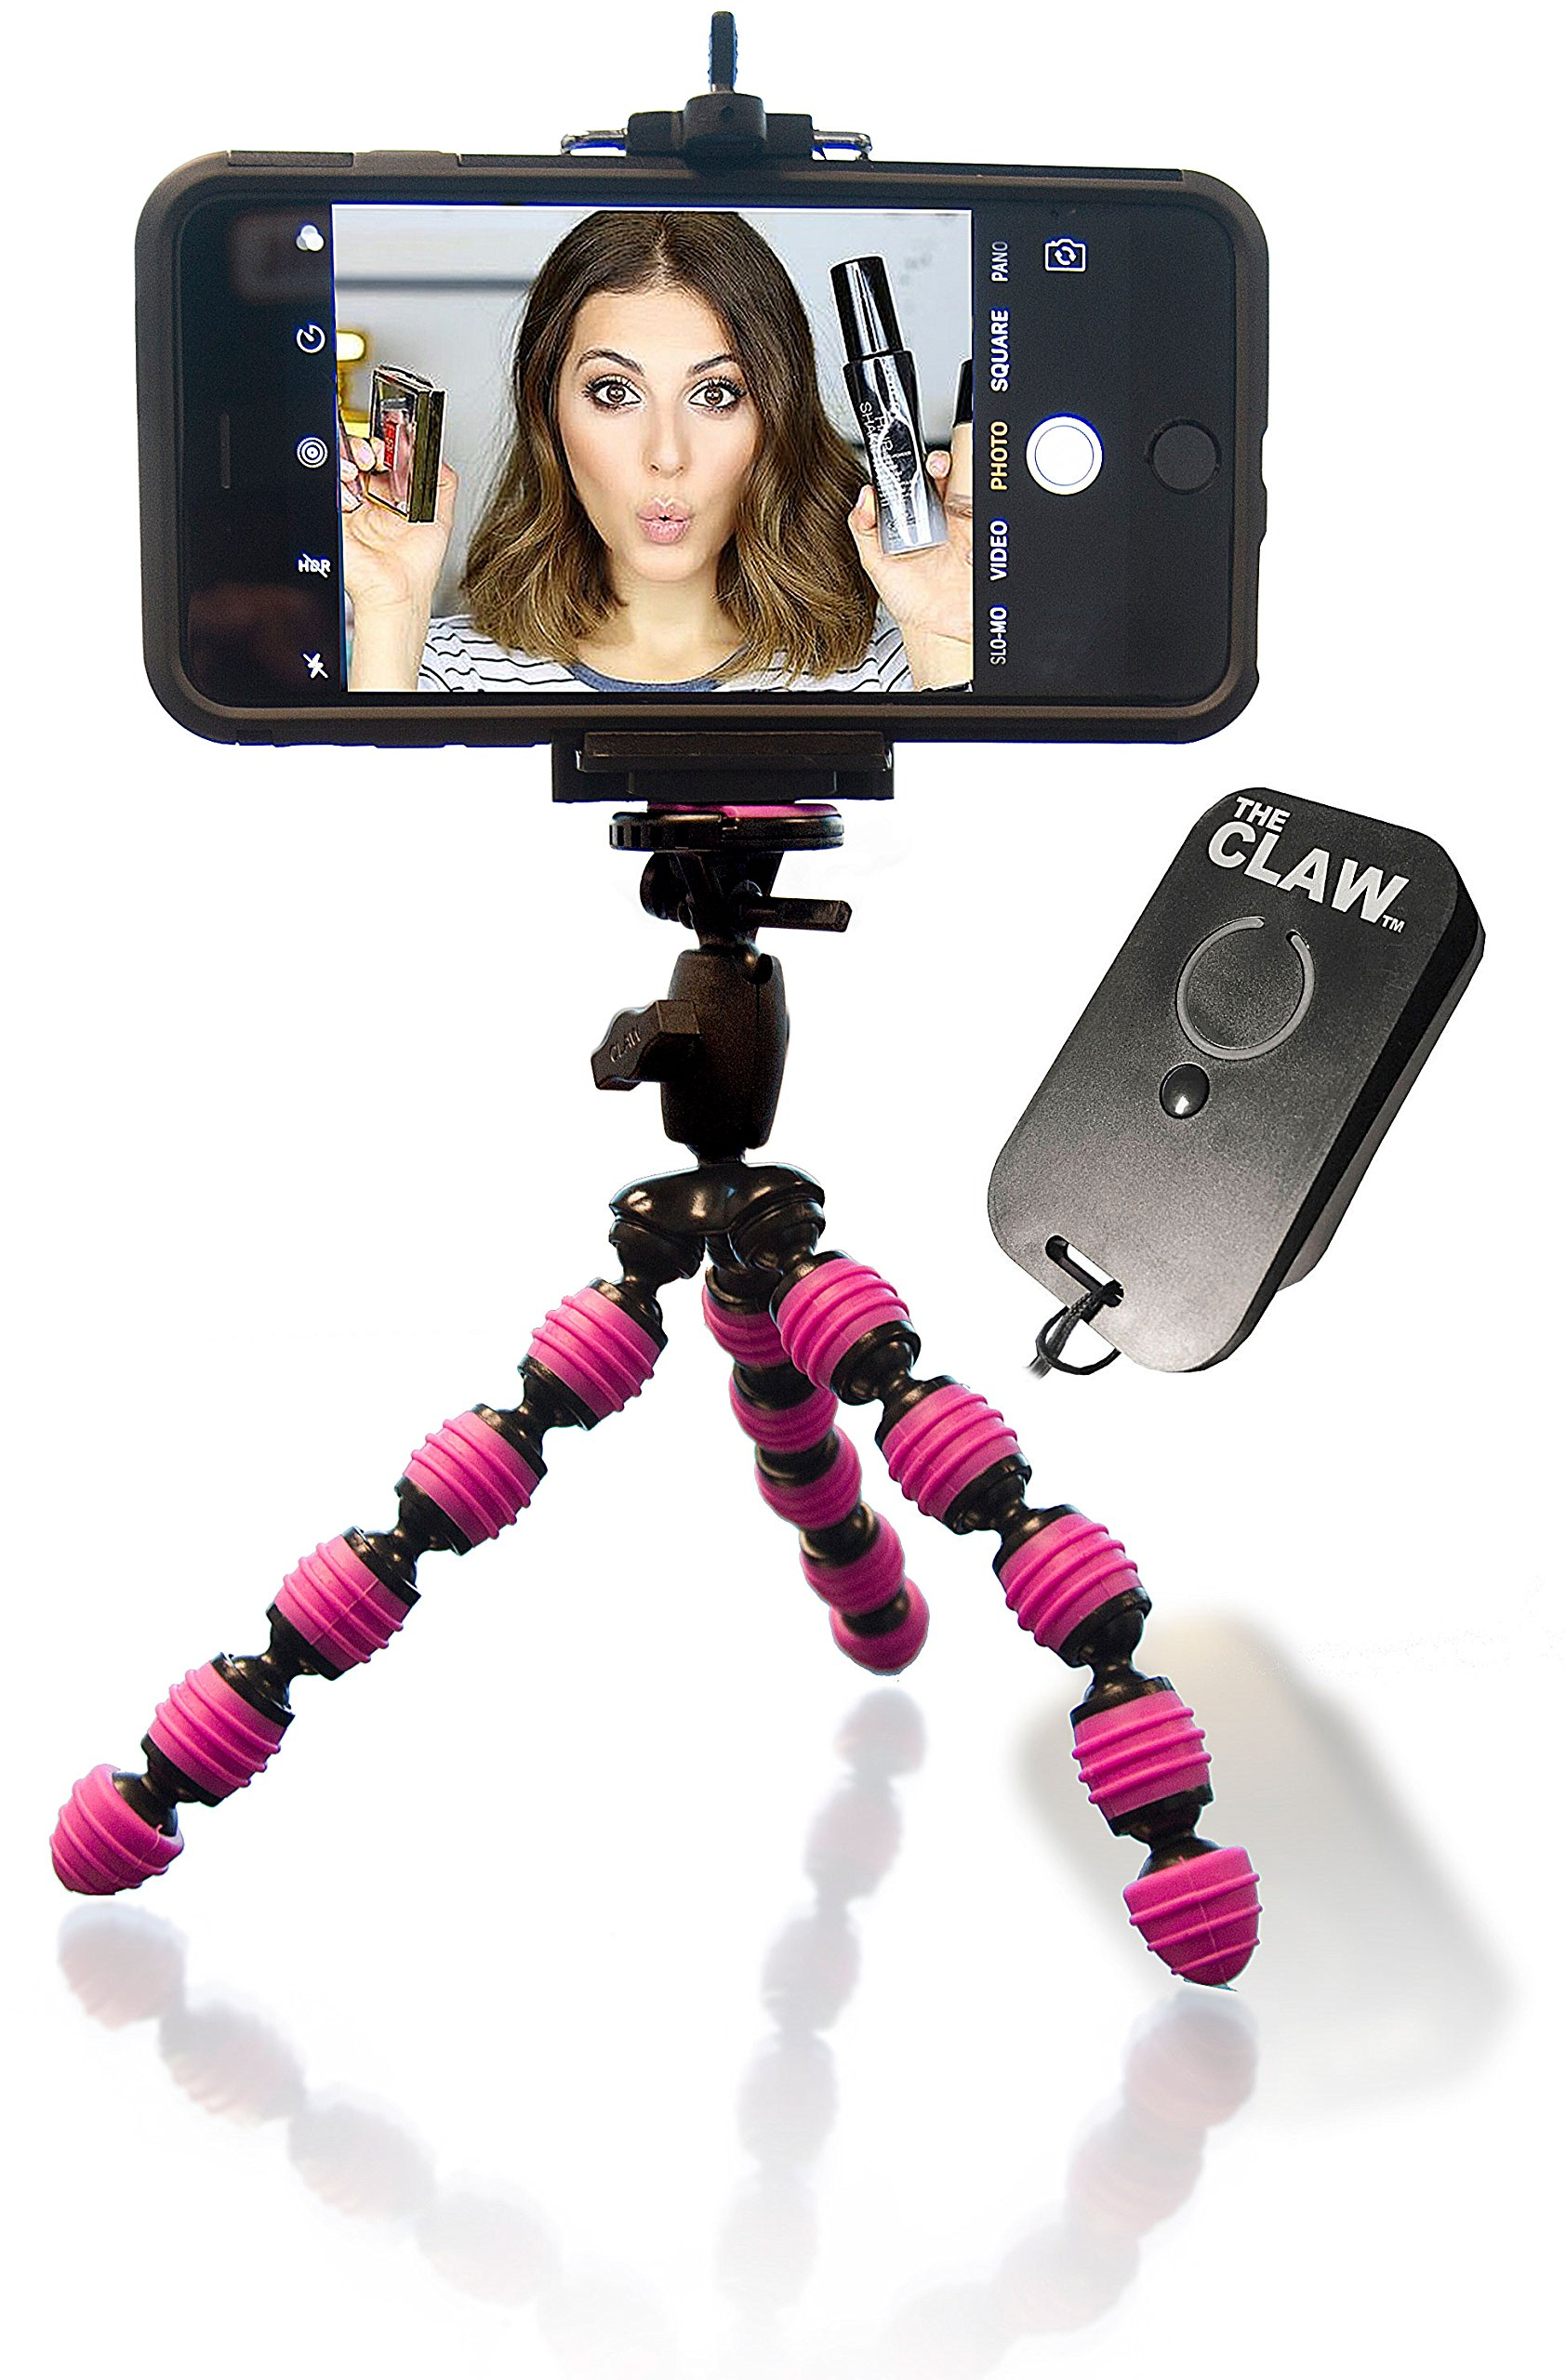 iPhone Tripod Bundle with Rechargeable Remote Bluetooth for iOS Locking Head Compact Mini Flexible GoPro Camera Video Facetime Skype Webcam & Selfie by The CLAW